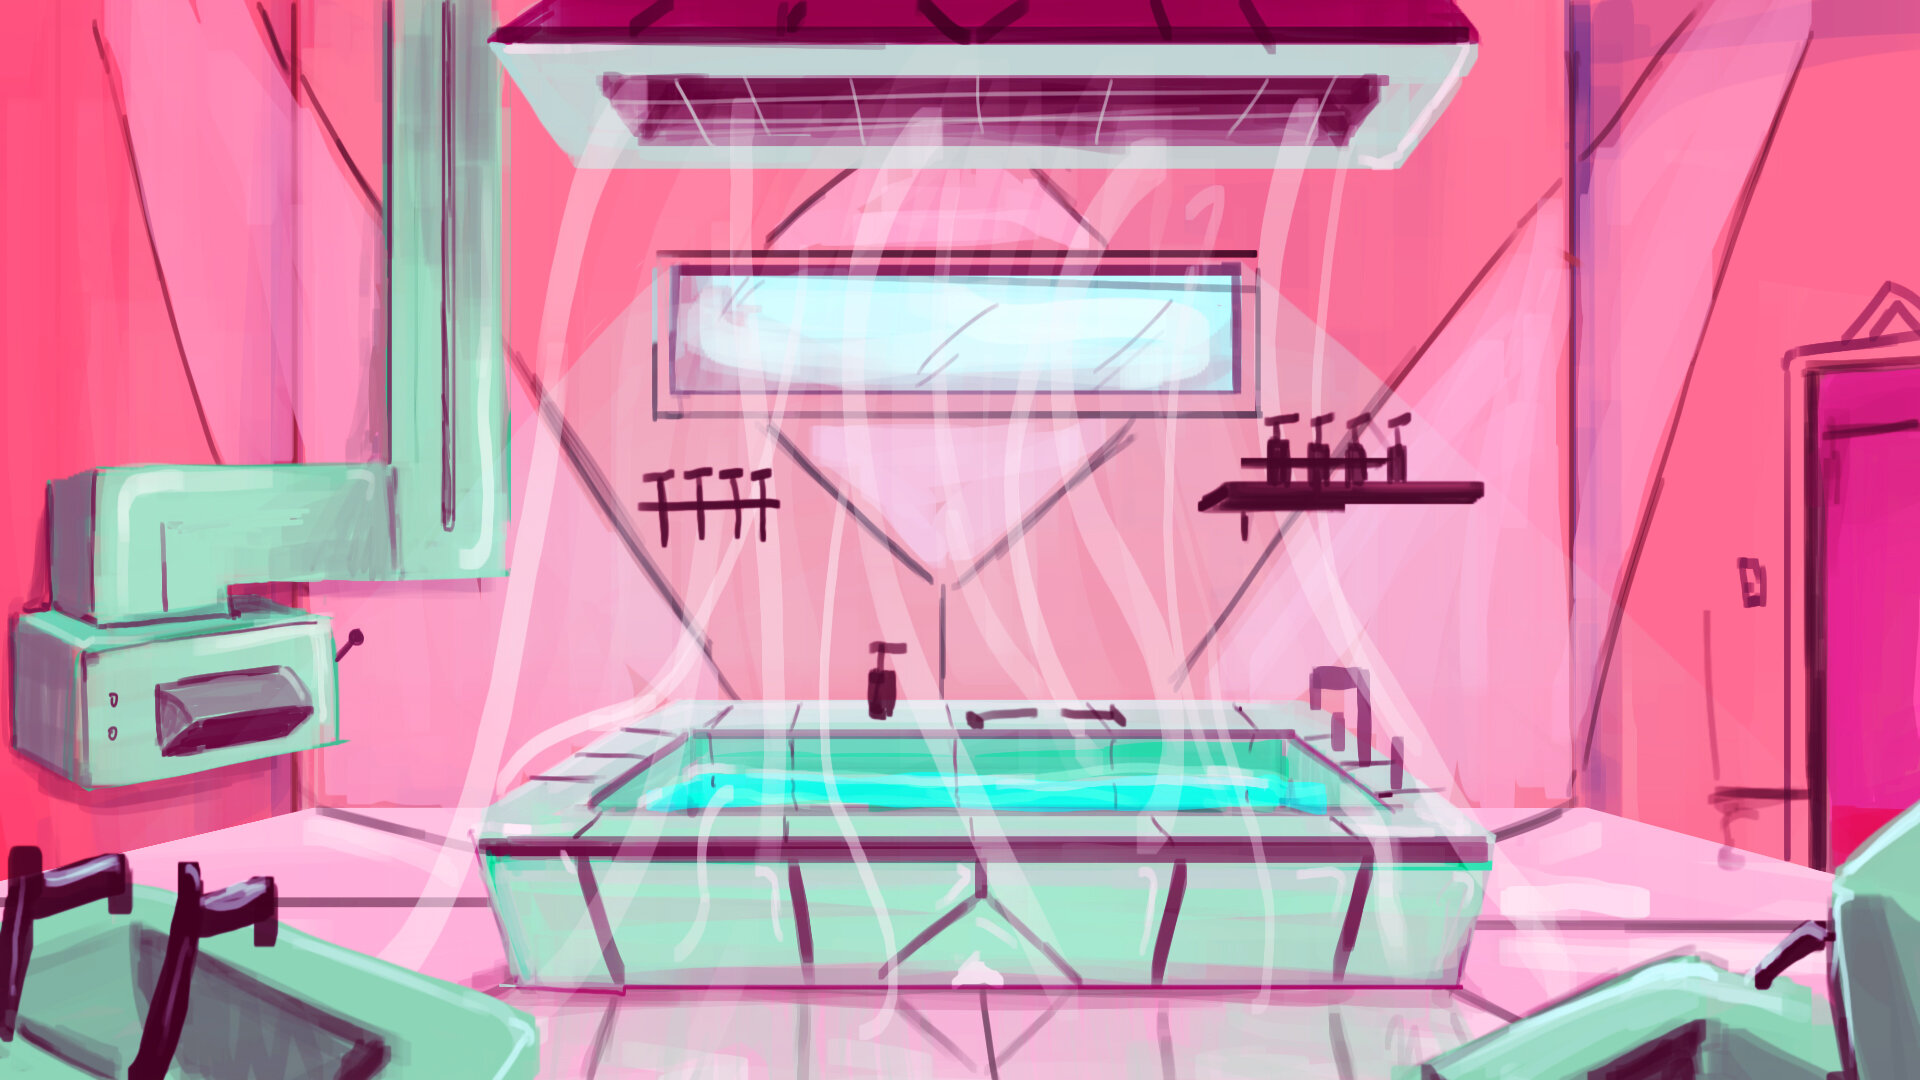 bathroom concept 8v40.jpg